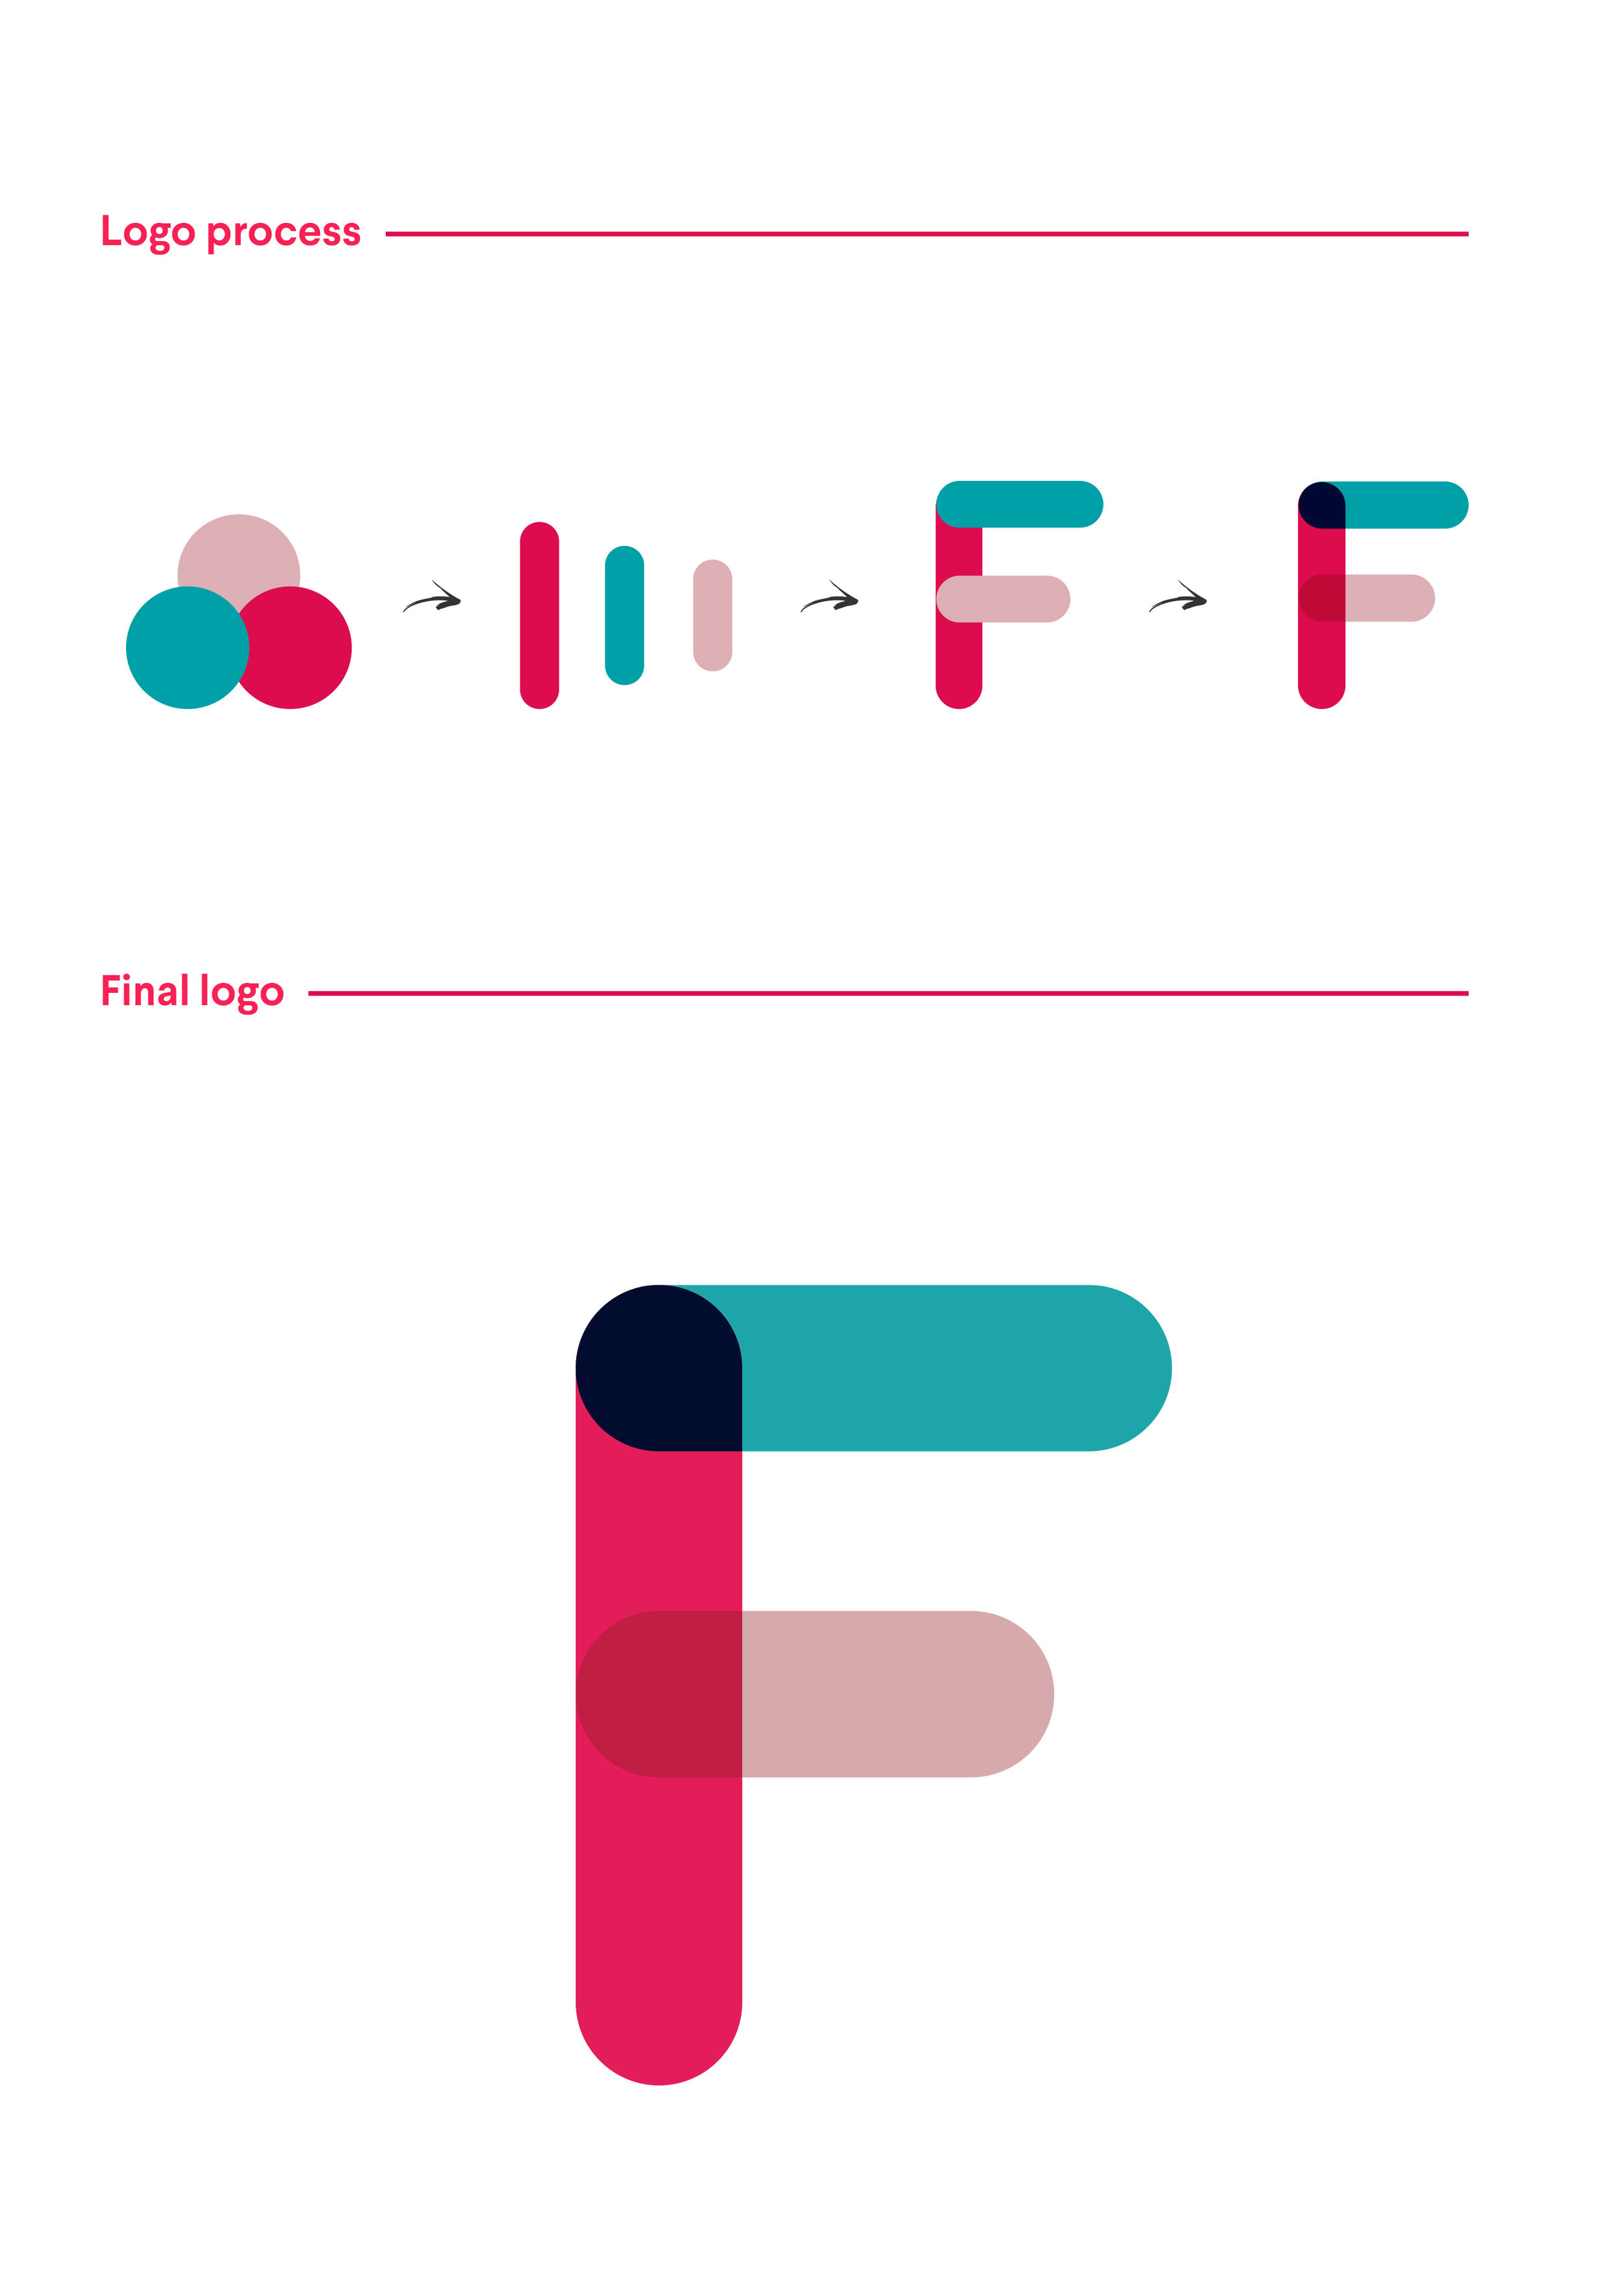 frifond-behance-logoprocess.jpg